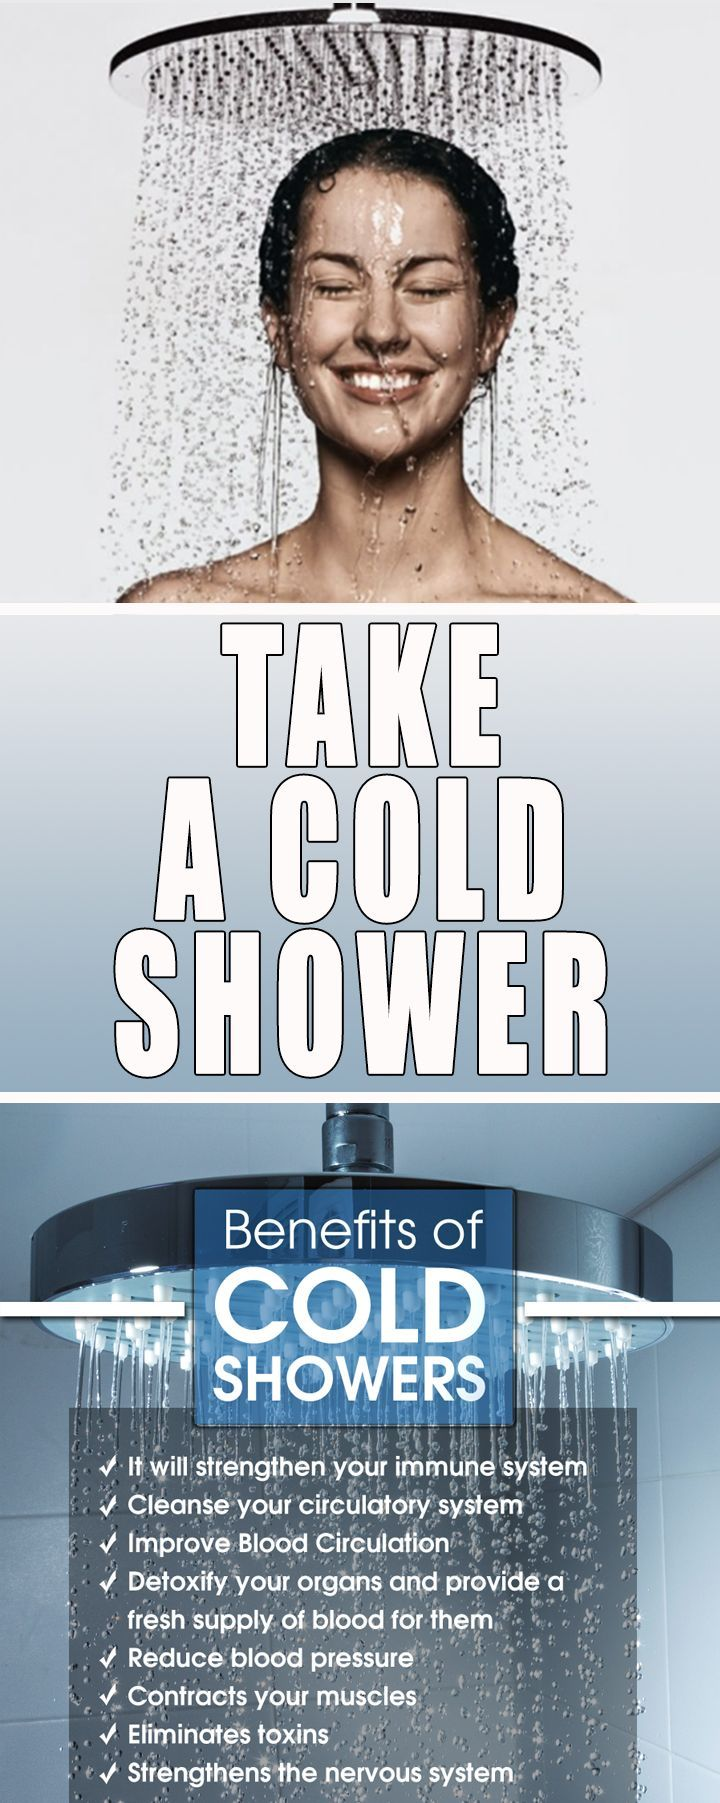 12 Surprising Benefits of Taking Cold Shower! | Healthy Society. cold shower benefits | cold showers | cold shower bombs | cold shower humor | cold shower melts | Cold showers needed. | Cold shower? |